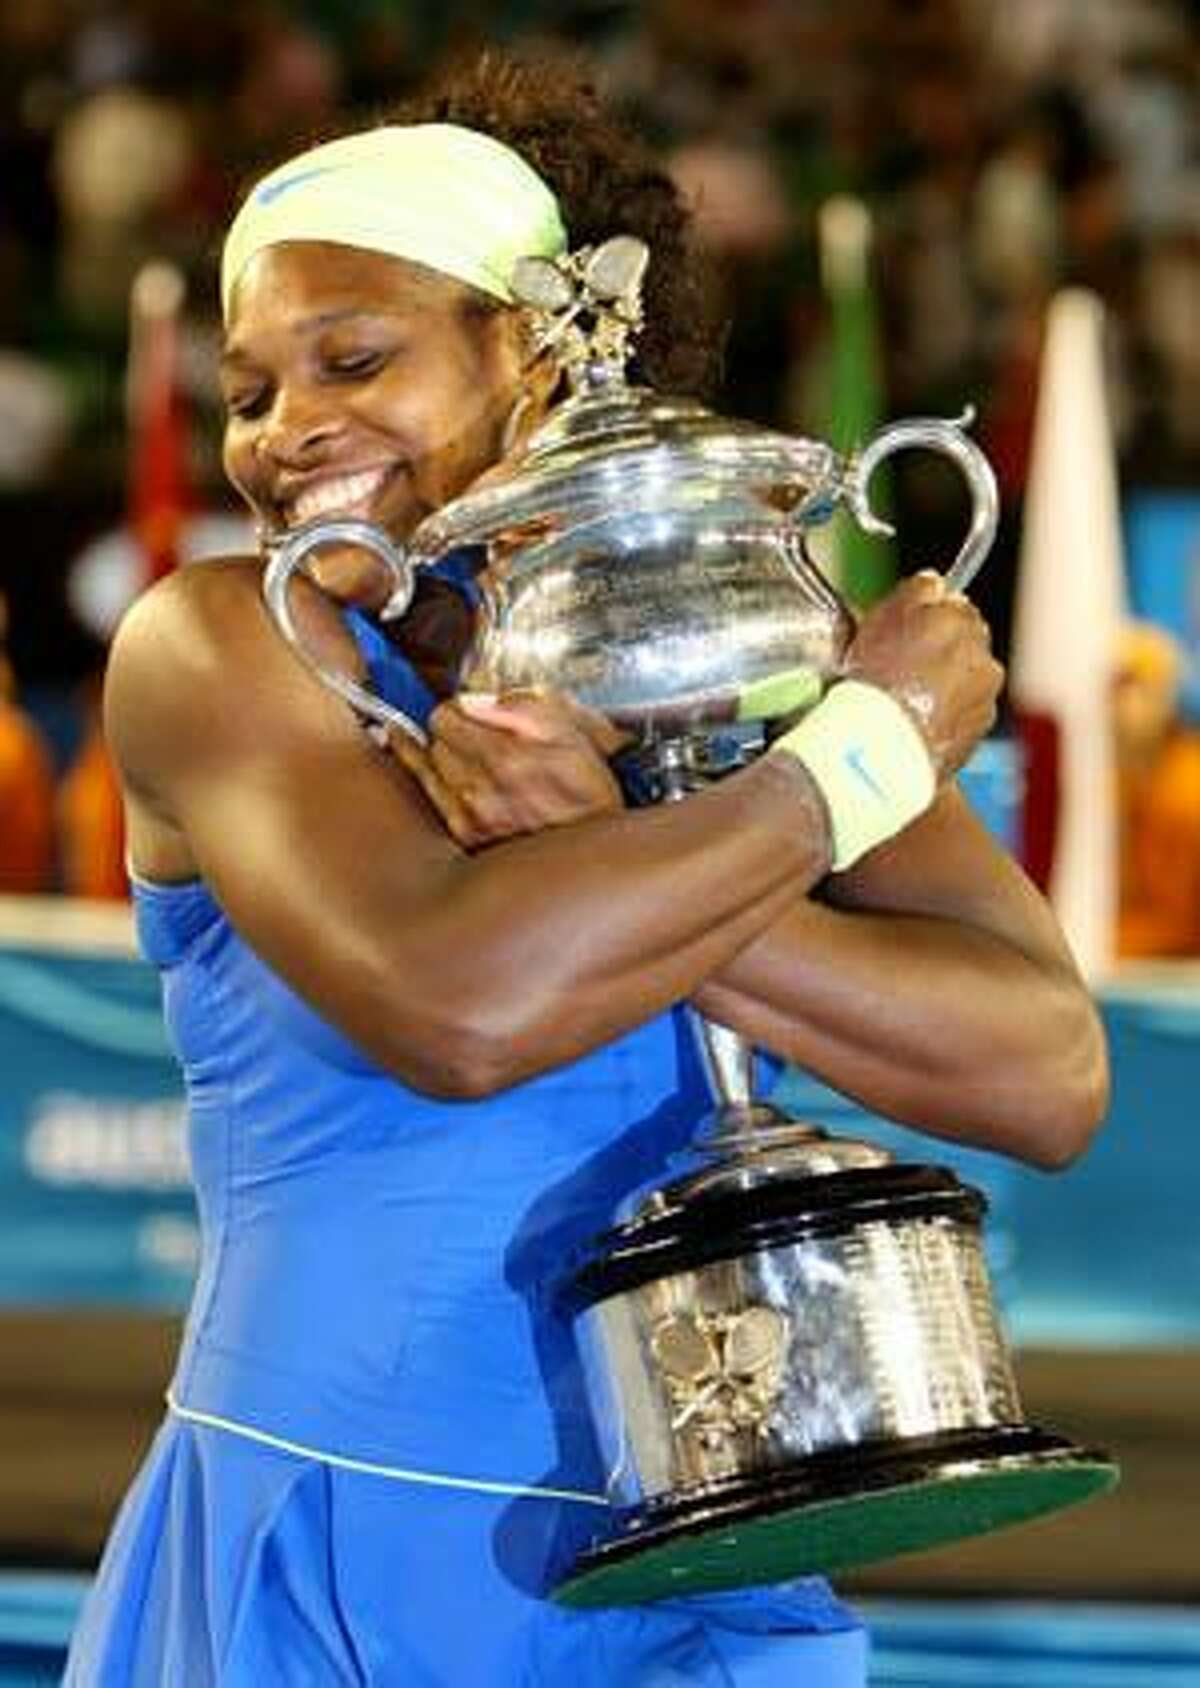 AP Serena Williams of the United States holds the trophy after beating Russia's Dinara Safina during the women's singles final at the Australian Open Tennis Championship in Melbourne, Australia, on Jan. 31. Williams was chosen as AP Female Athlete of Year for the second time on Tuesday.